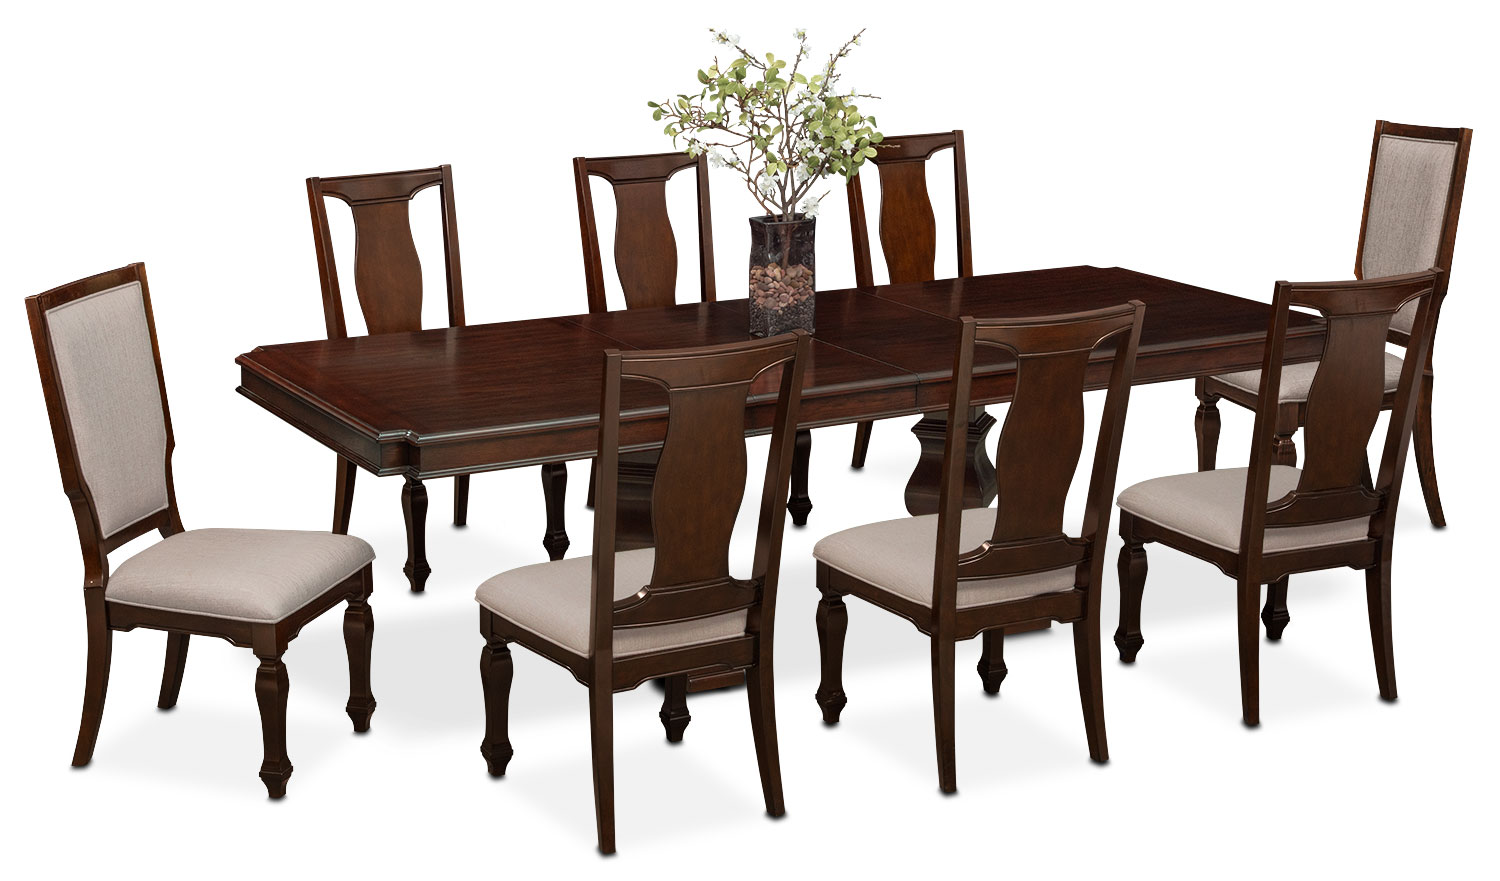 vienna dining table 6 side chairs and 2 upholstered side chairs merlot american signature. Black Bedroom Furniture Sets. Home Design Ideas